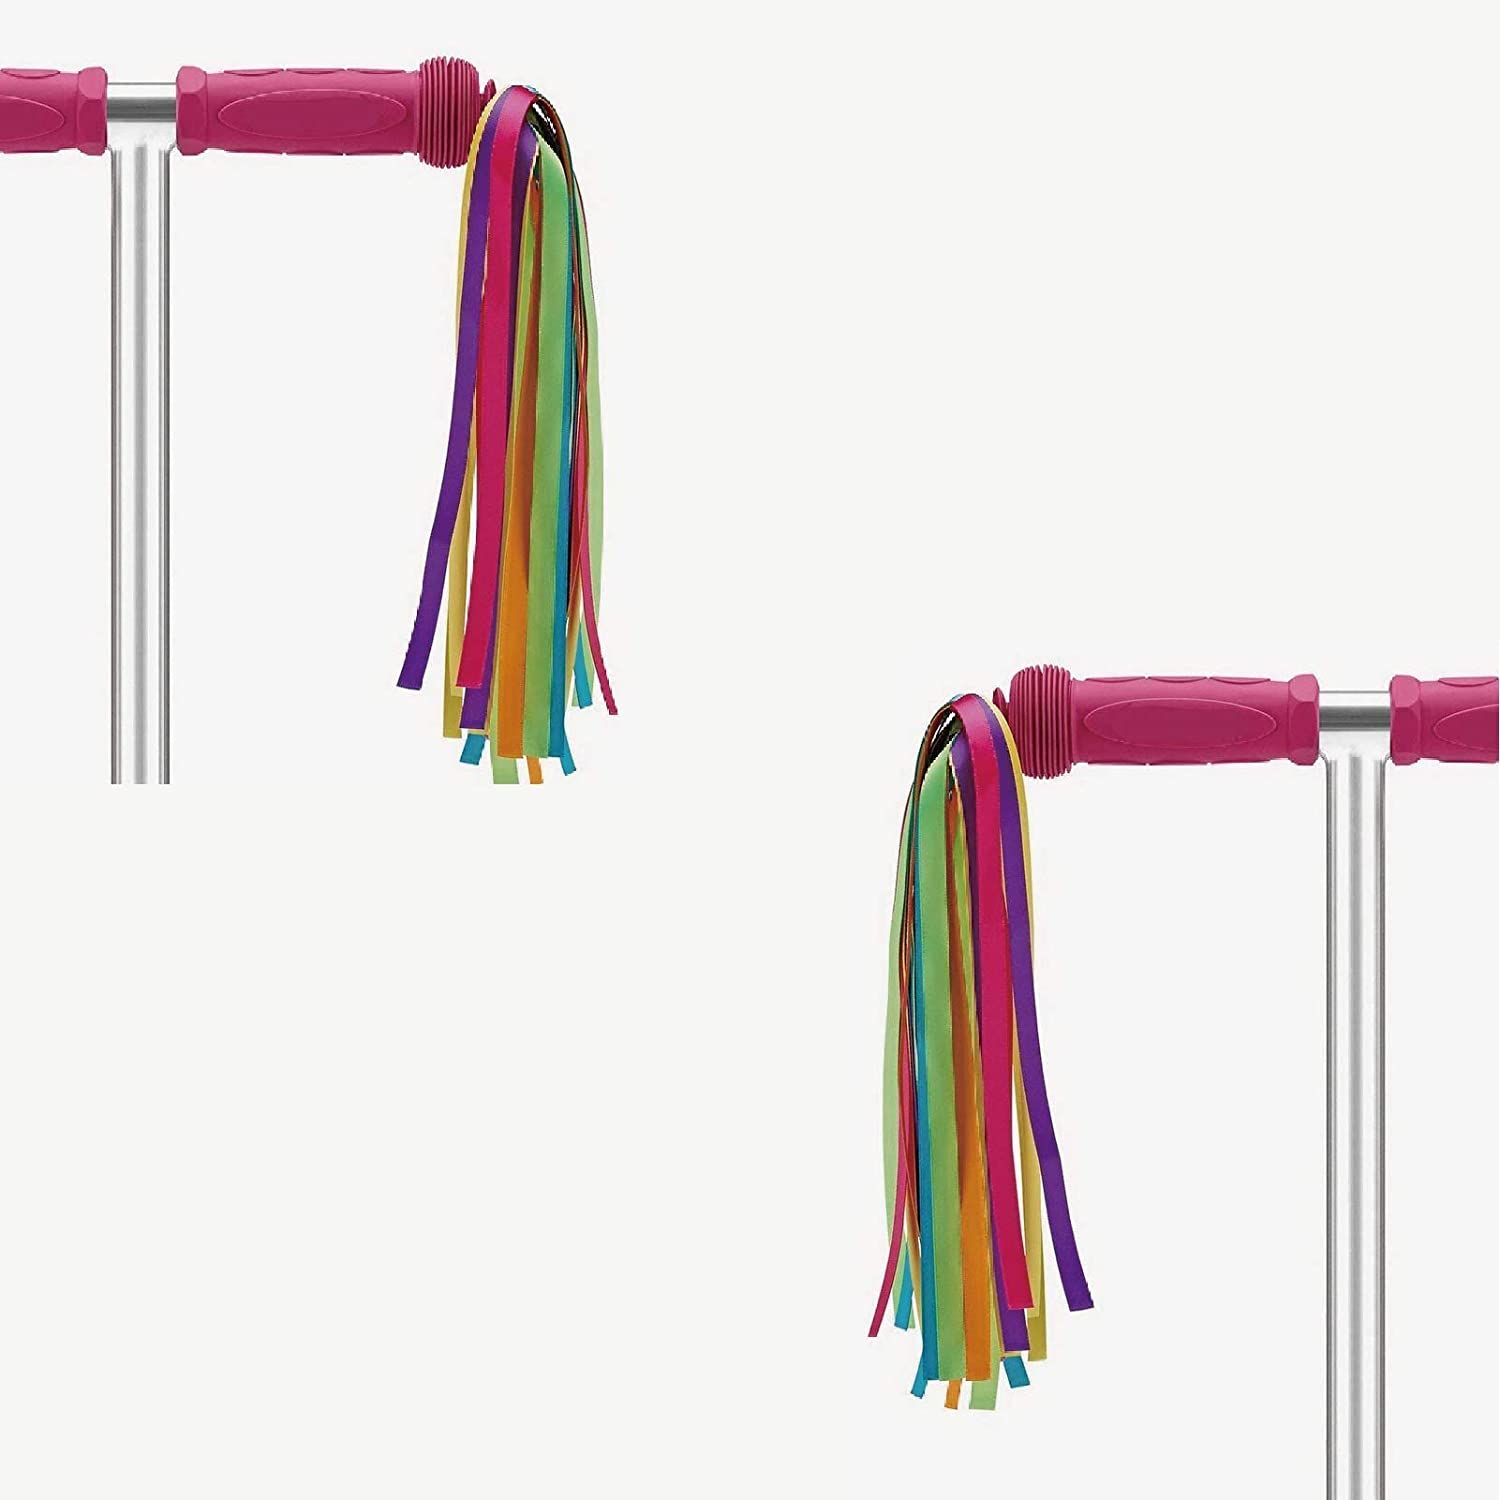 ABSOAR Cycling Colorful Bike Streamers Girls Kids Boys Bicycle Tassel Ribbon Handlebar Scooter Streamers 2 Pairs 18 Bands